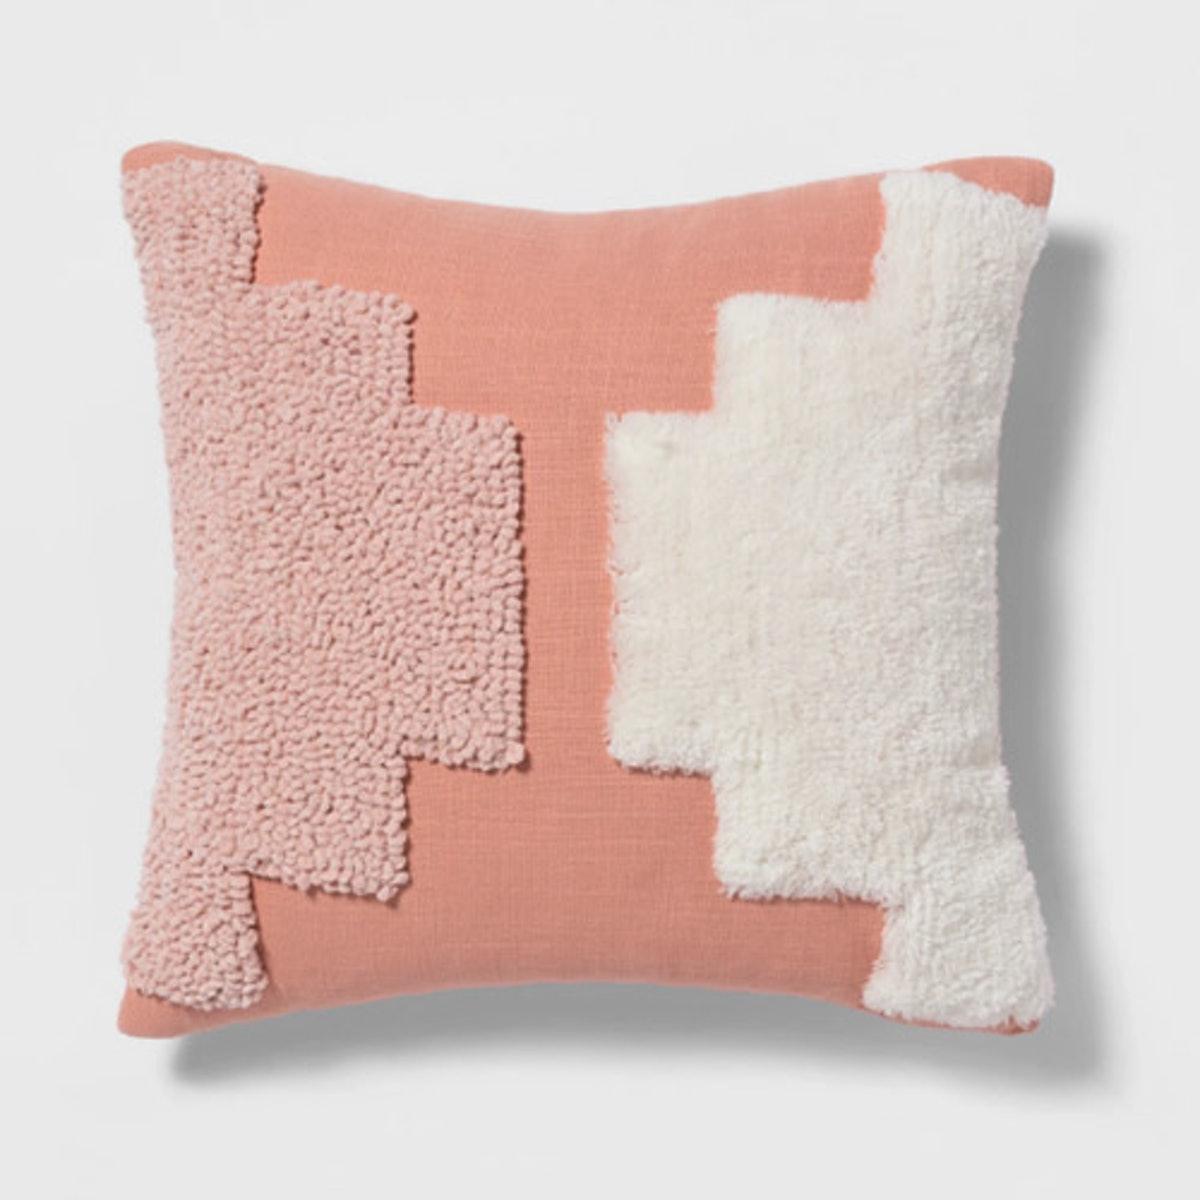 Tufted Square Throw Pillow